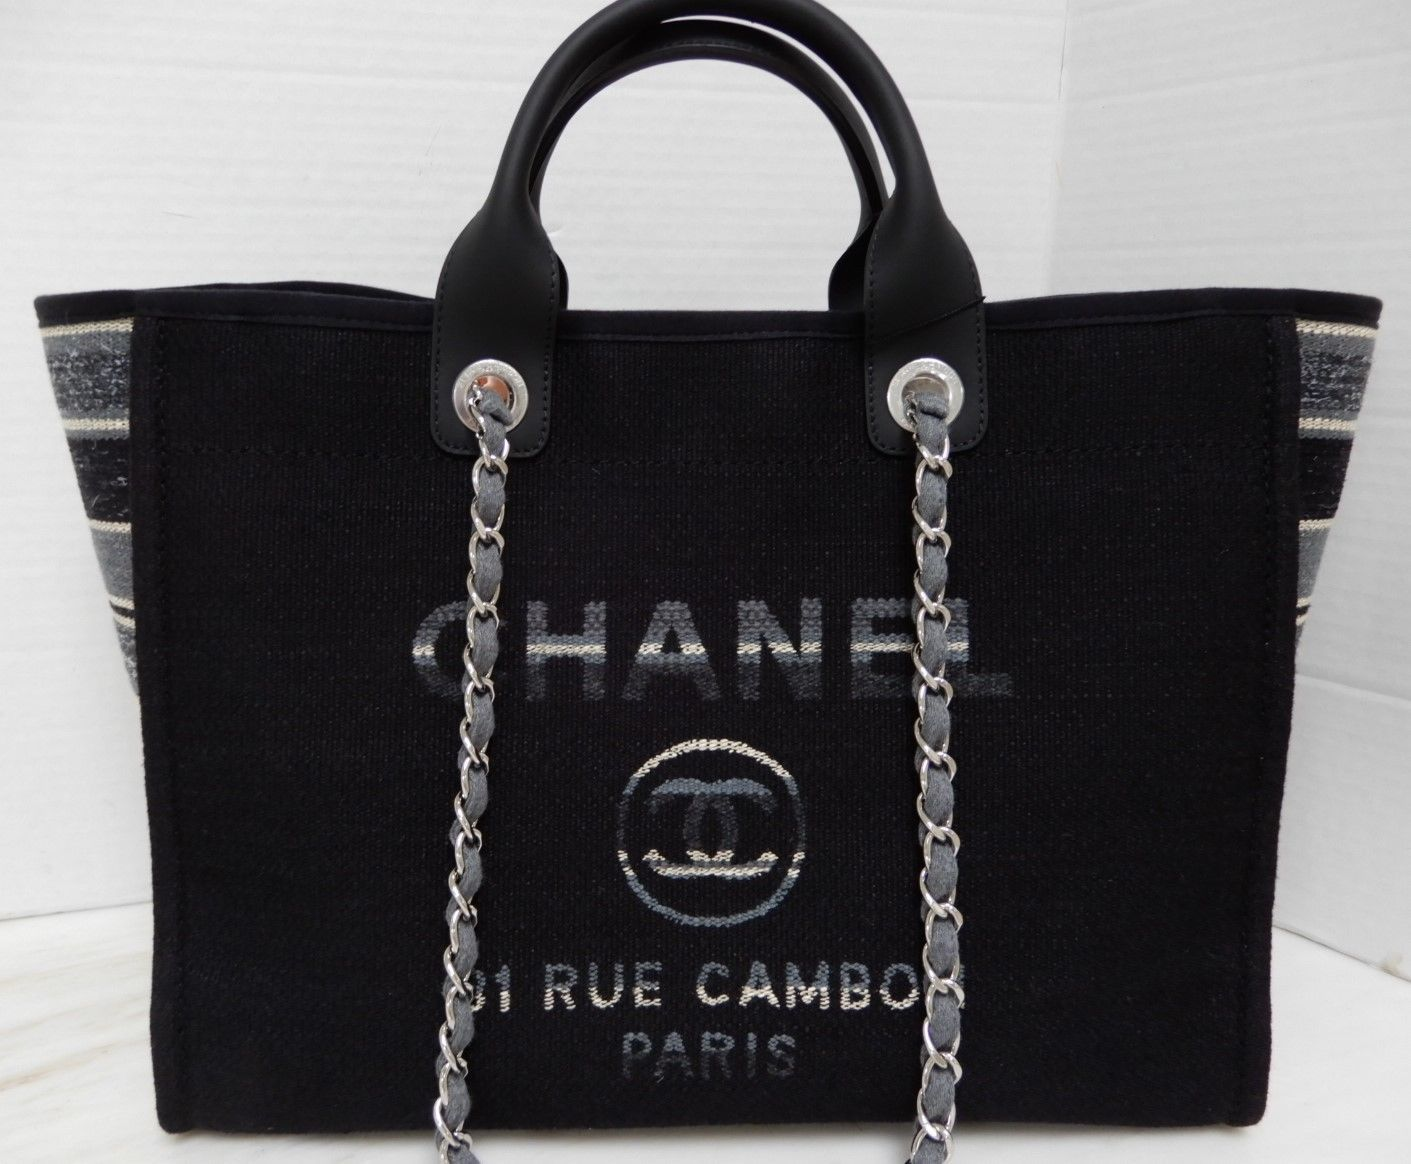 663bca090300 Chanel Black Deauville Bag Canvas Grand and 50 similar items. S l1600